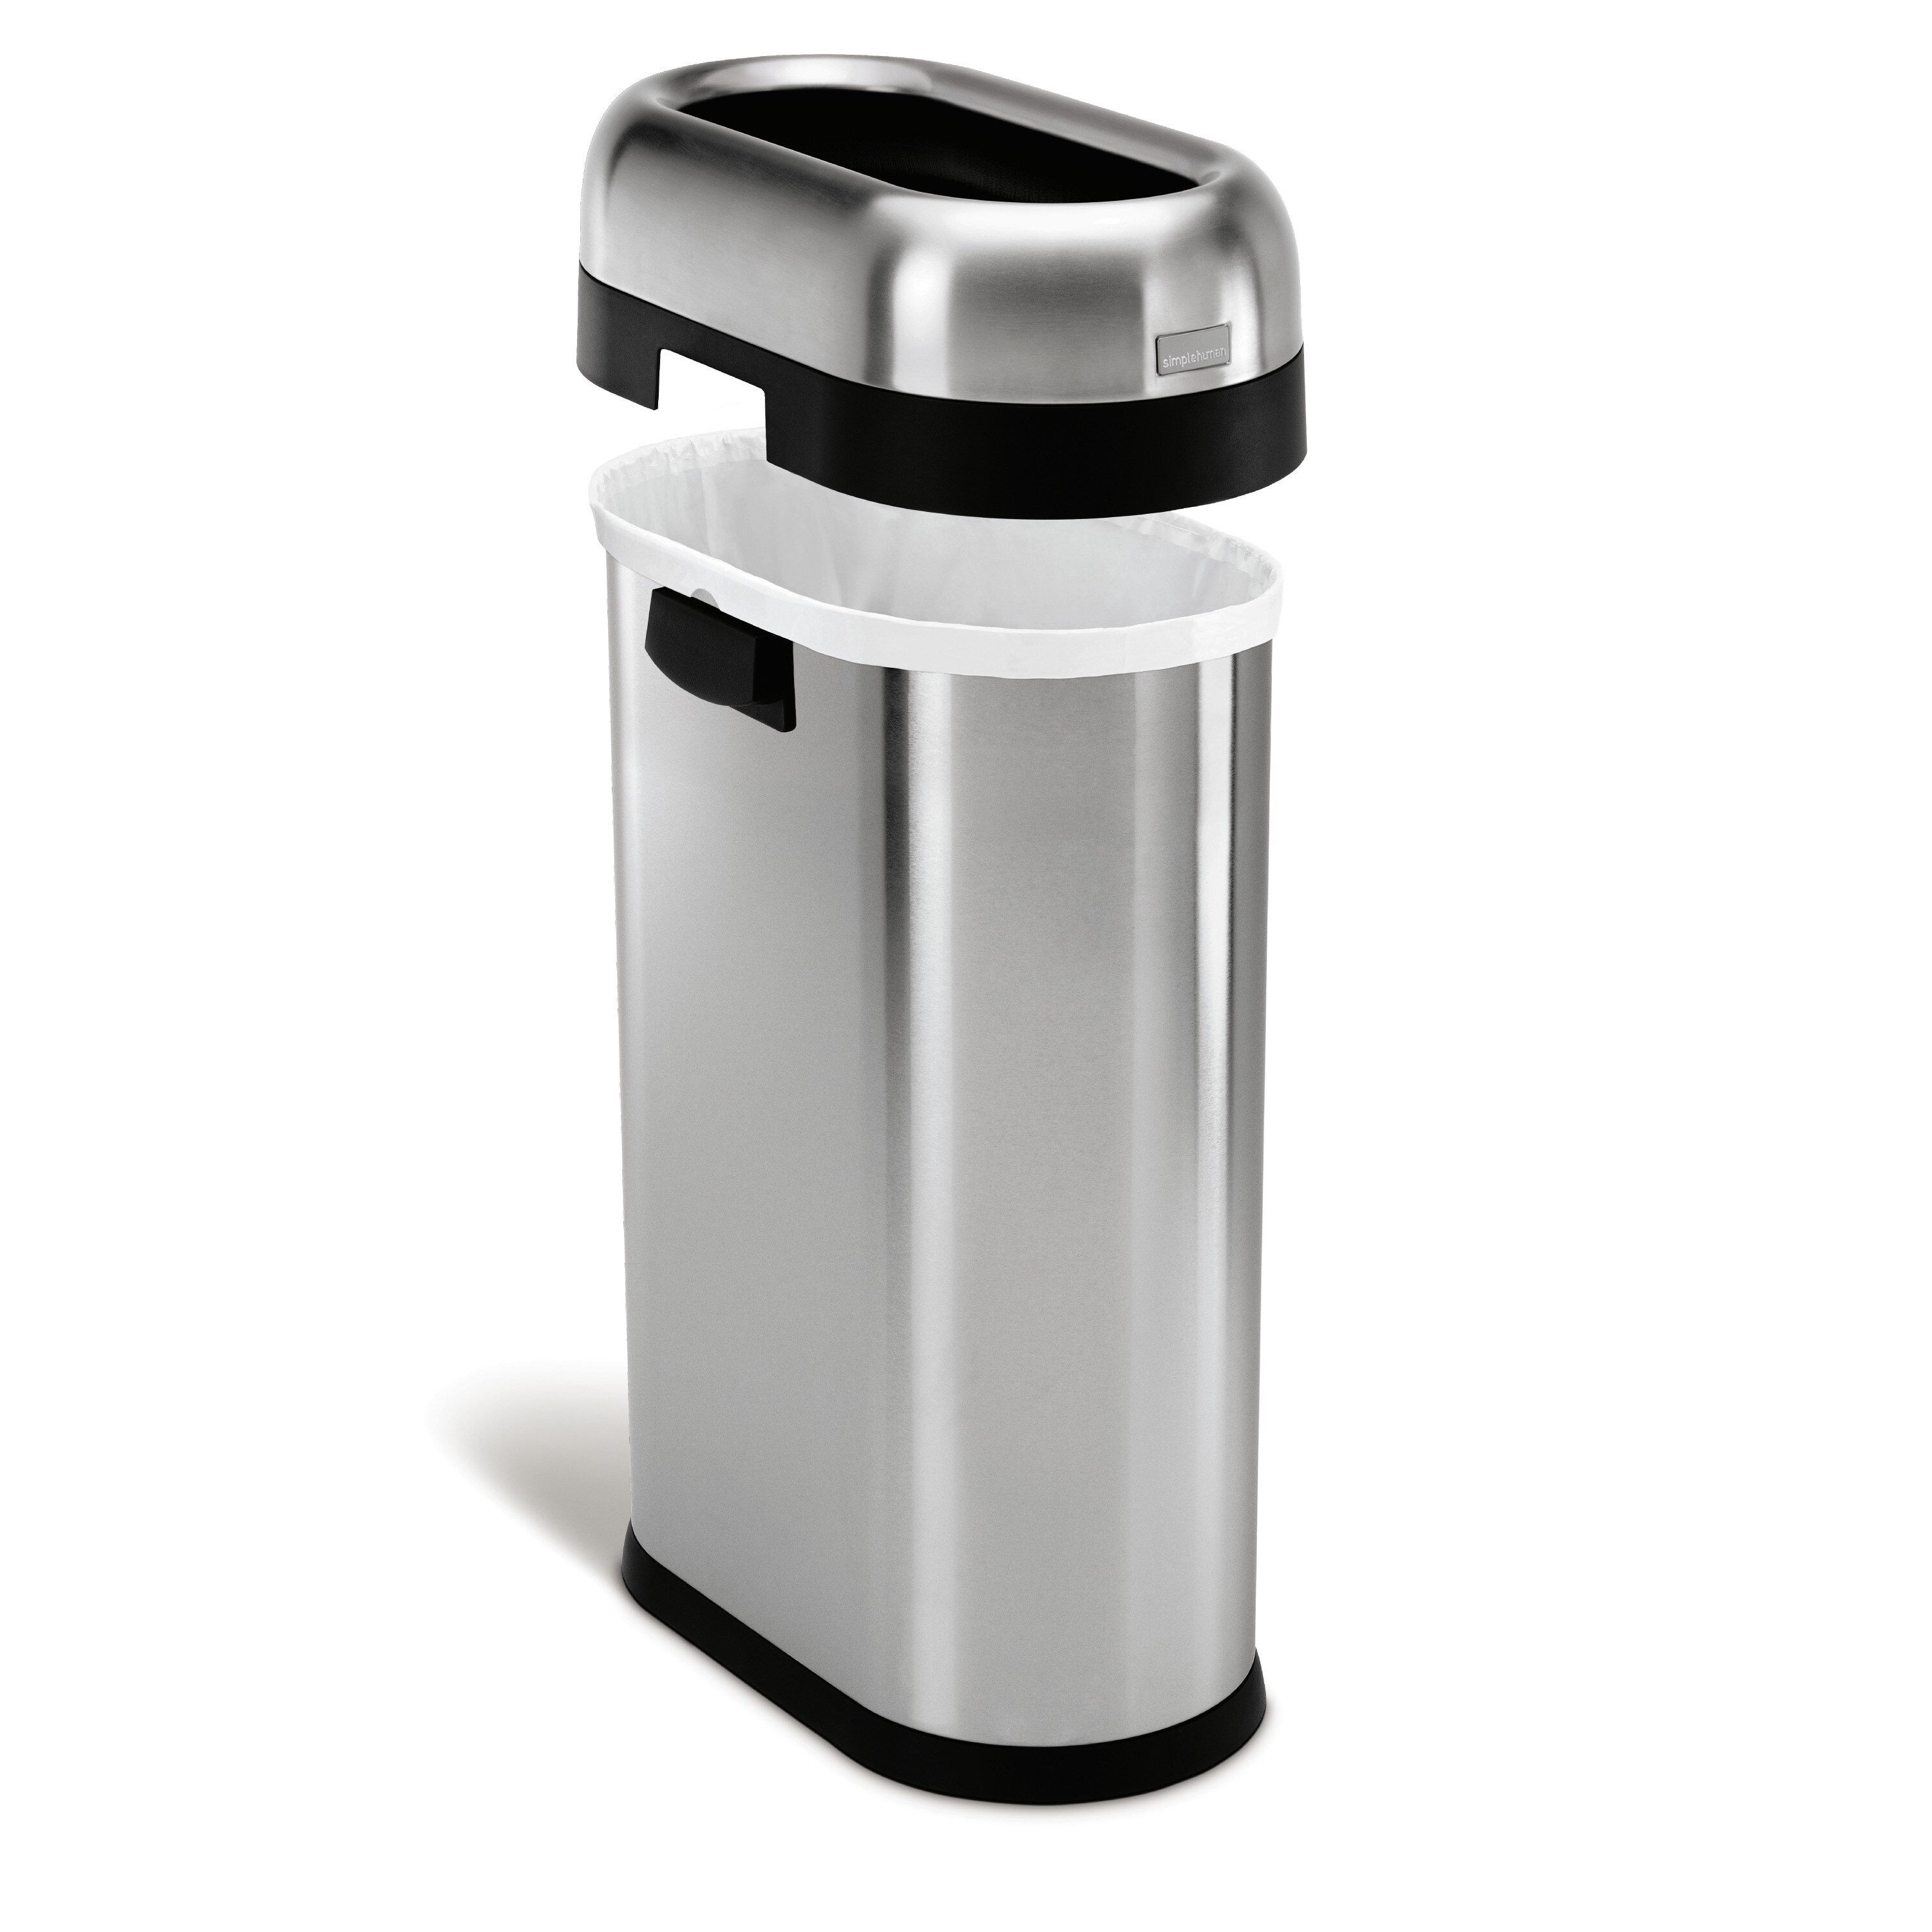 Simplehuman Slim Open Brushed Stainless Steel 13 gallon 50 liter